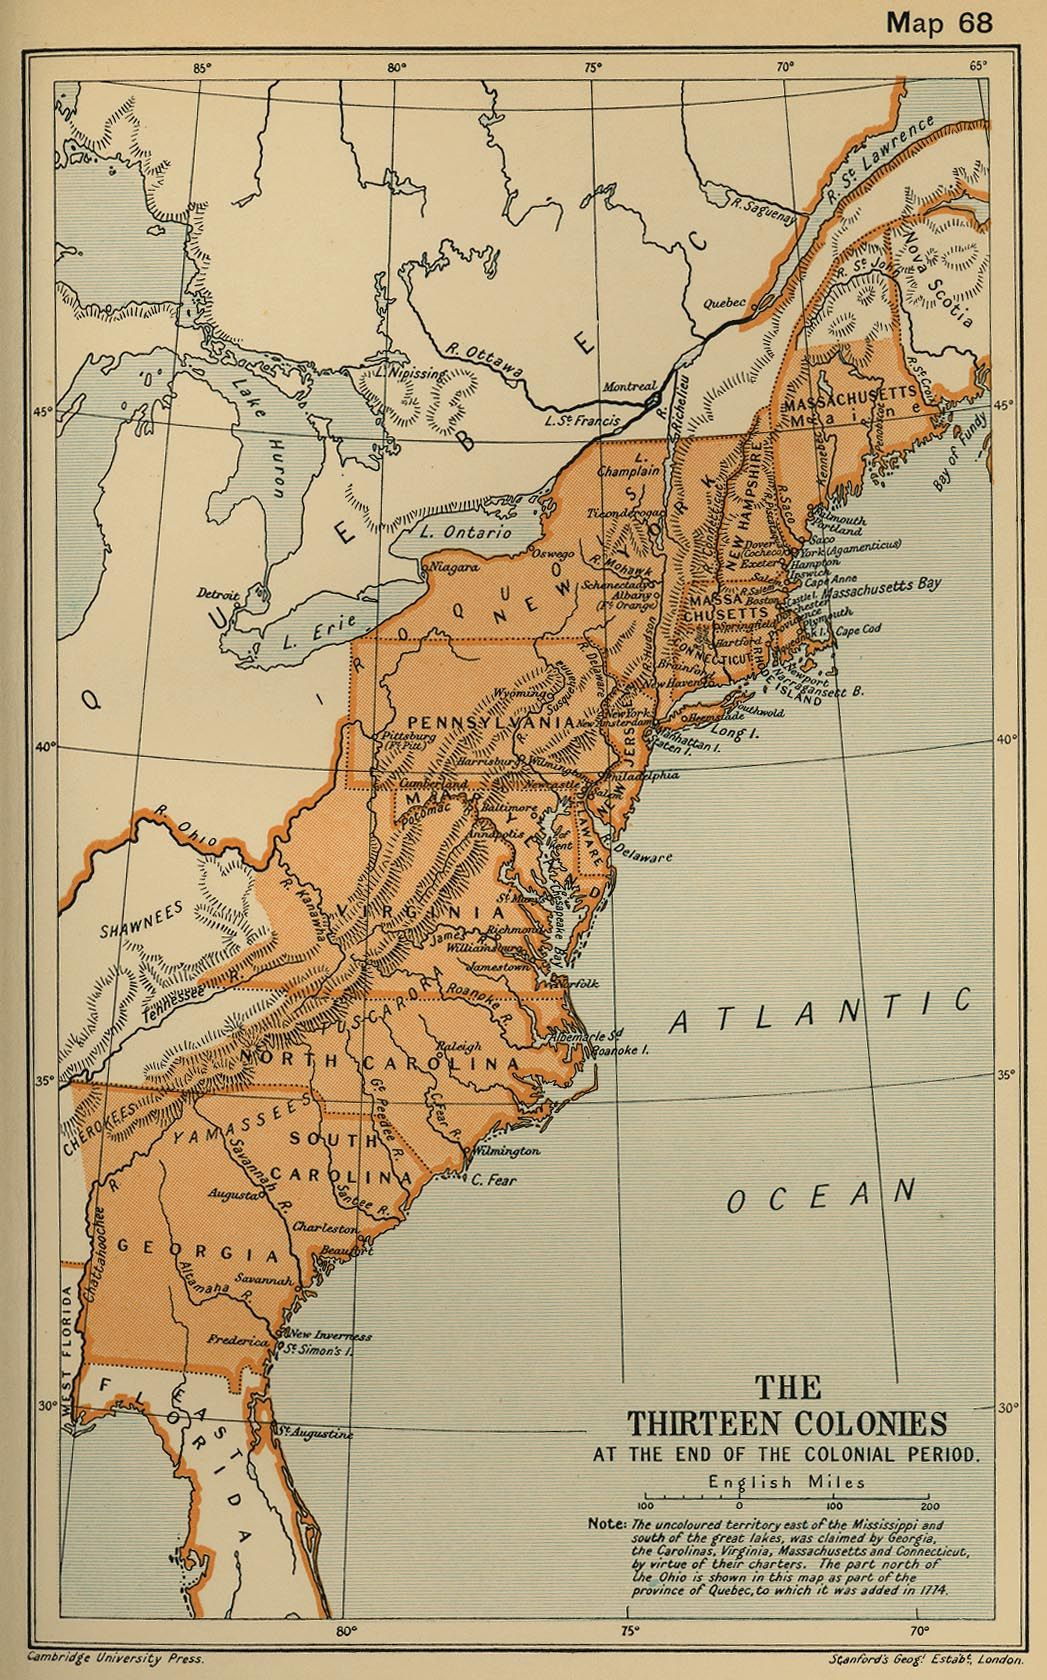 South Carolina One Of The 13 Original American Colonies Was